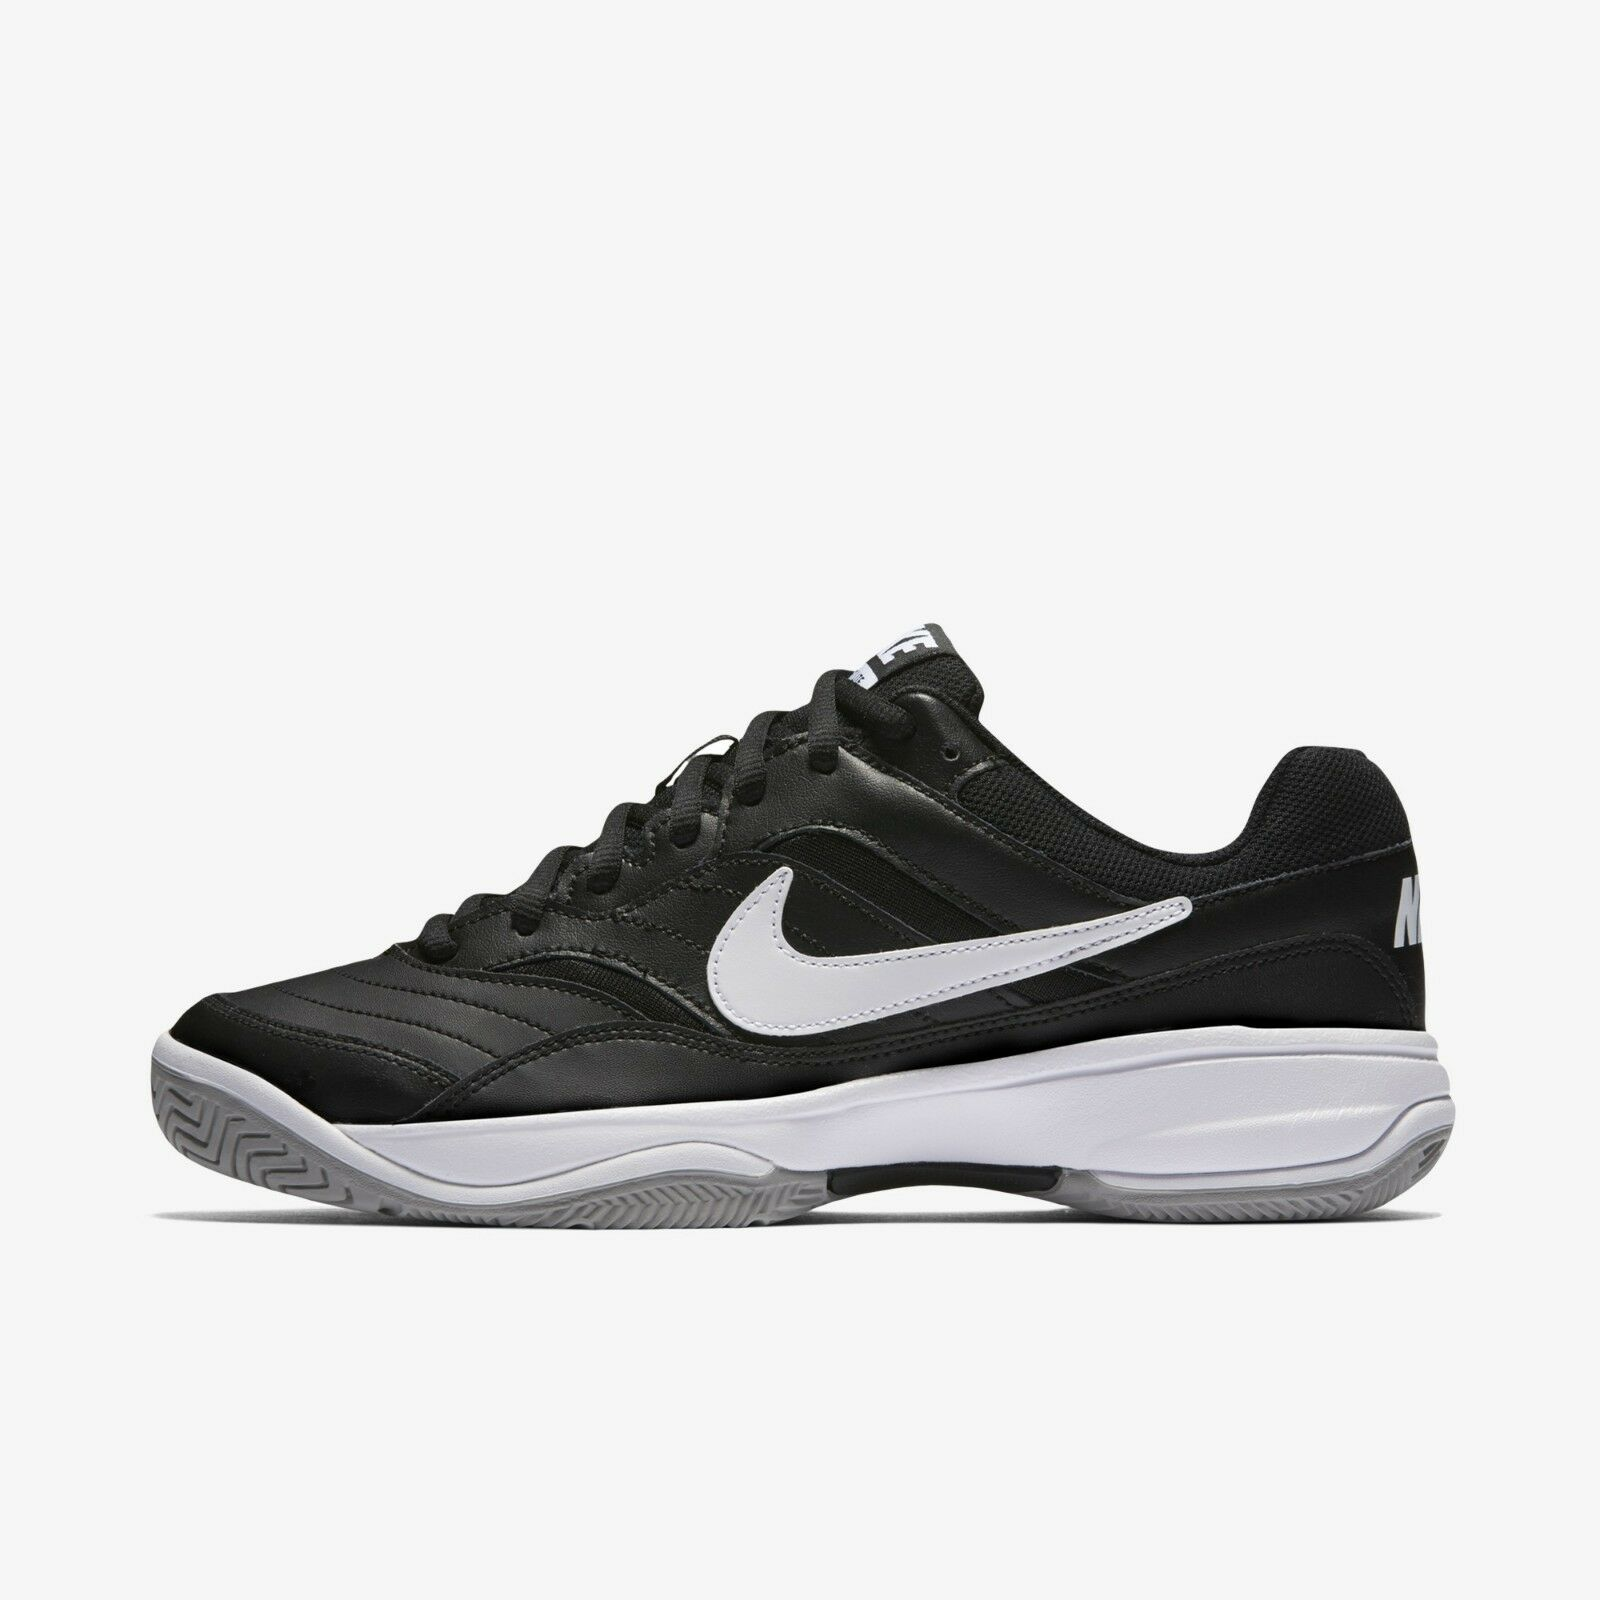 New Nike Men's Court Lite Tennis shoes Sneakers - Black White(845021-010)